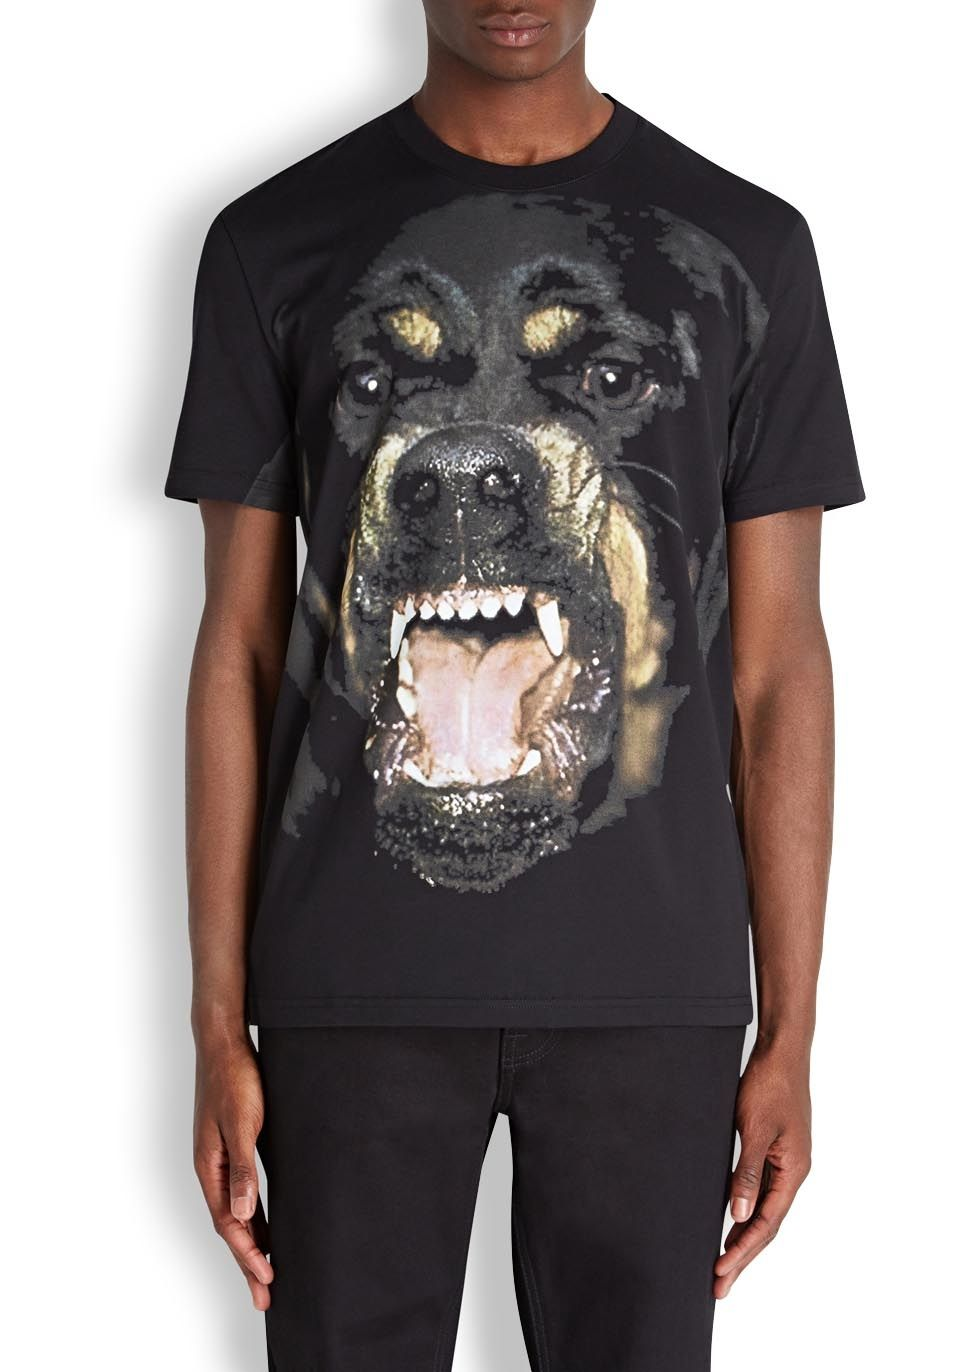 Black rottweiler-print cotton T-shirt - T-shirts & Vests - All Clothing - Men